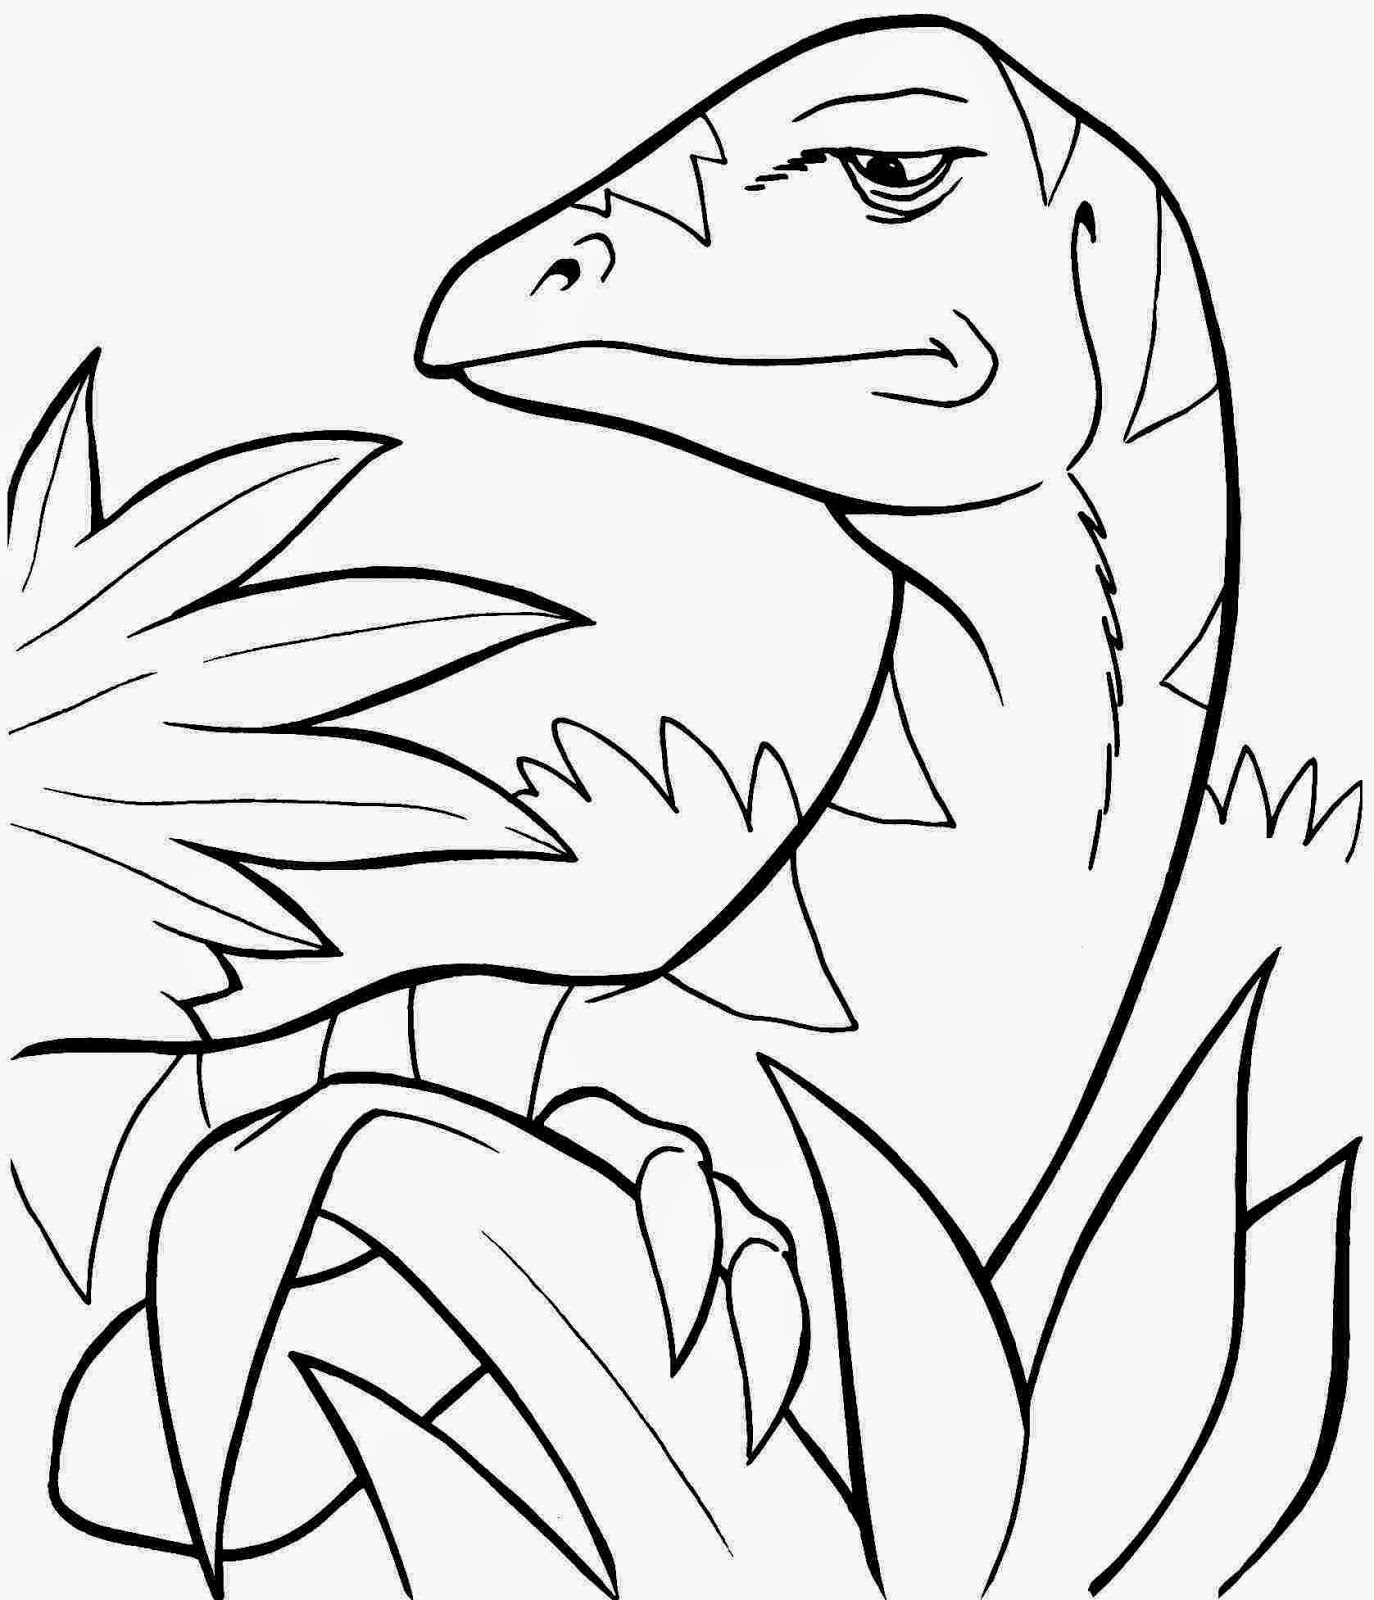 dinosaur to color dinosaur coloring pages to download and print for free dinosaur to color